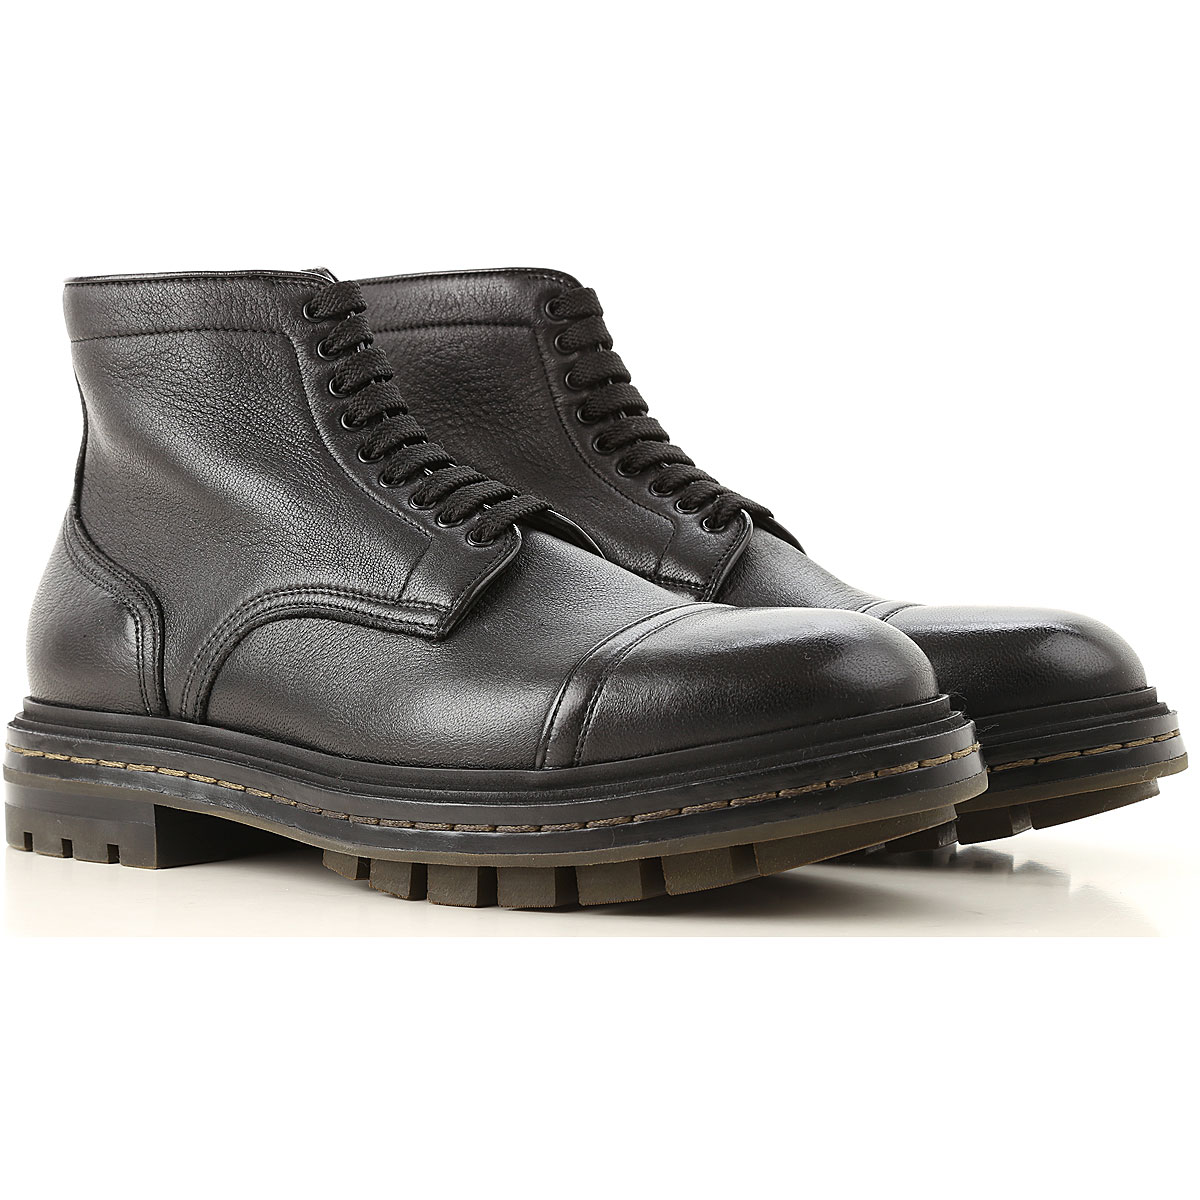 Image of Santoni Boots for Men, Booties, Black, Leather, 2017, 10 10.5 11 11.5 6 7 7.5 8 8.5 9 9.5